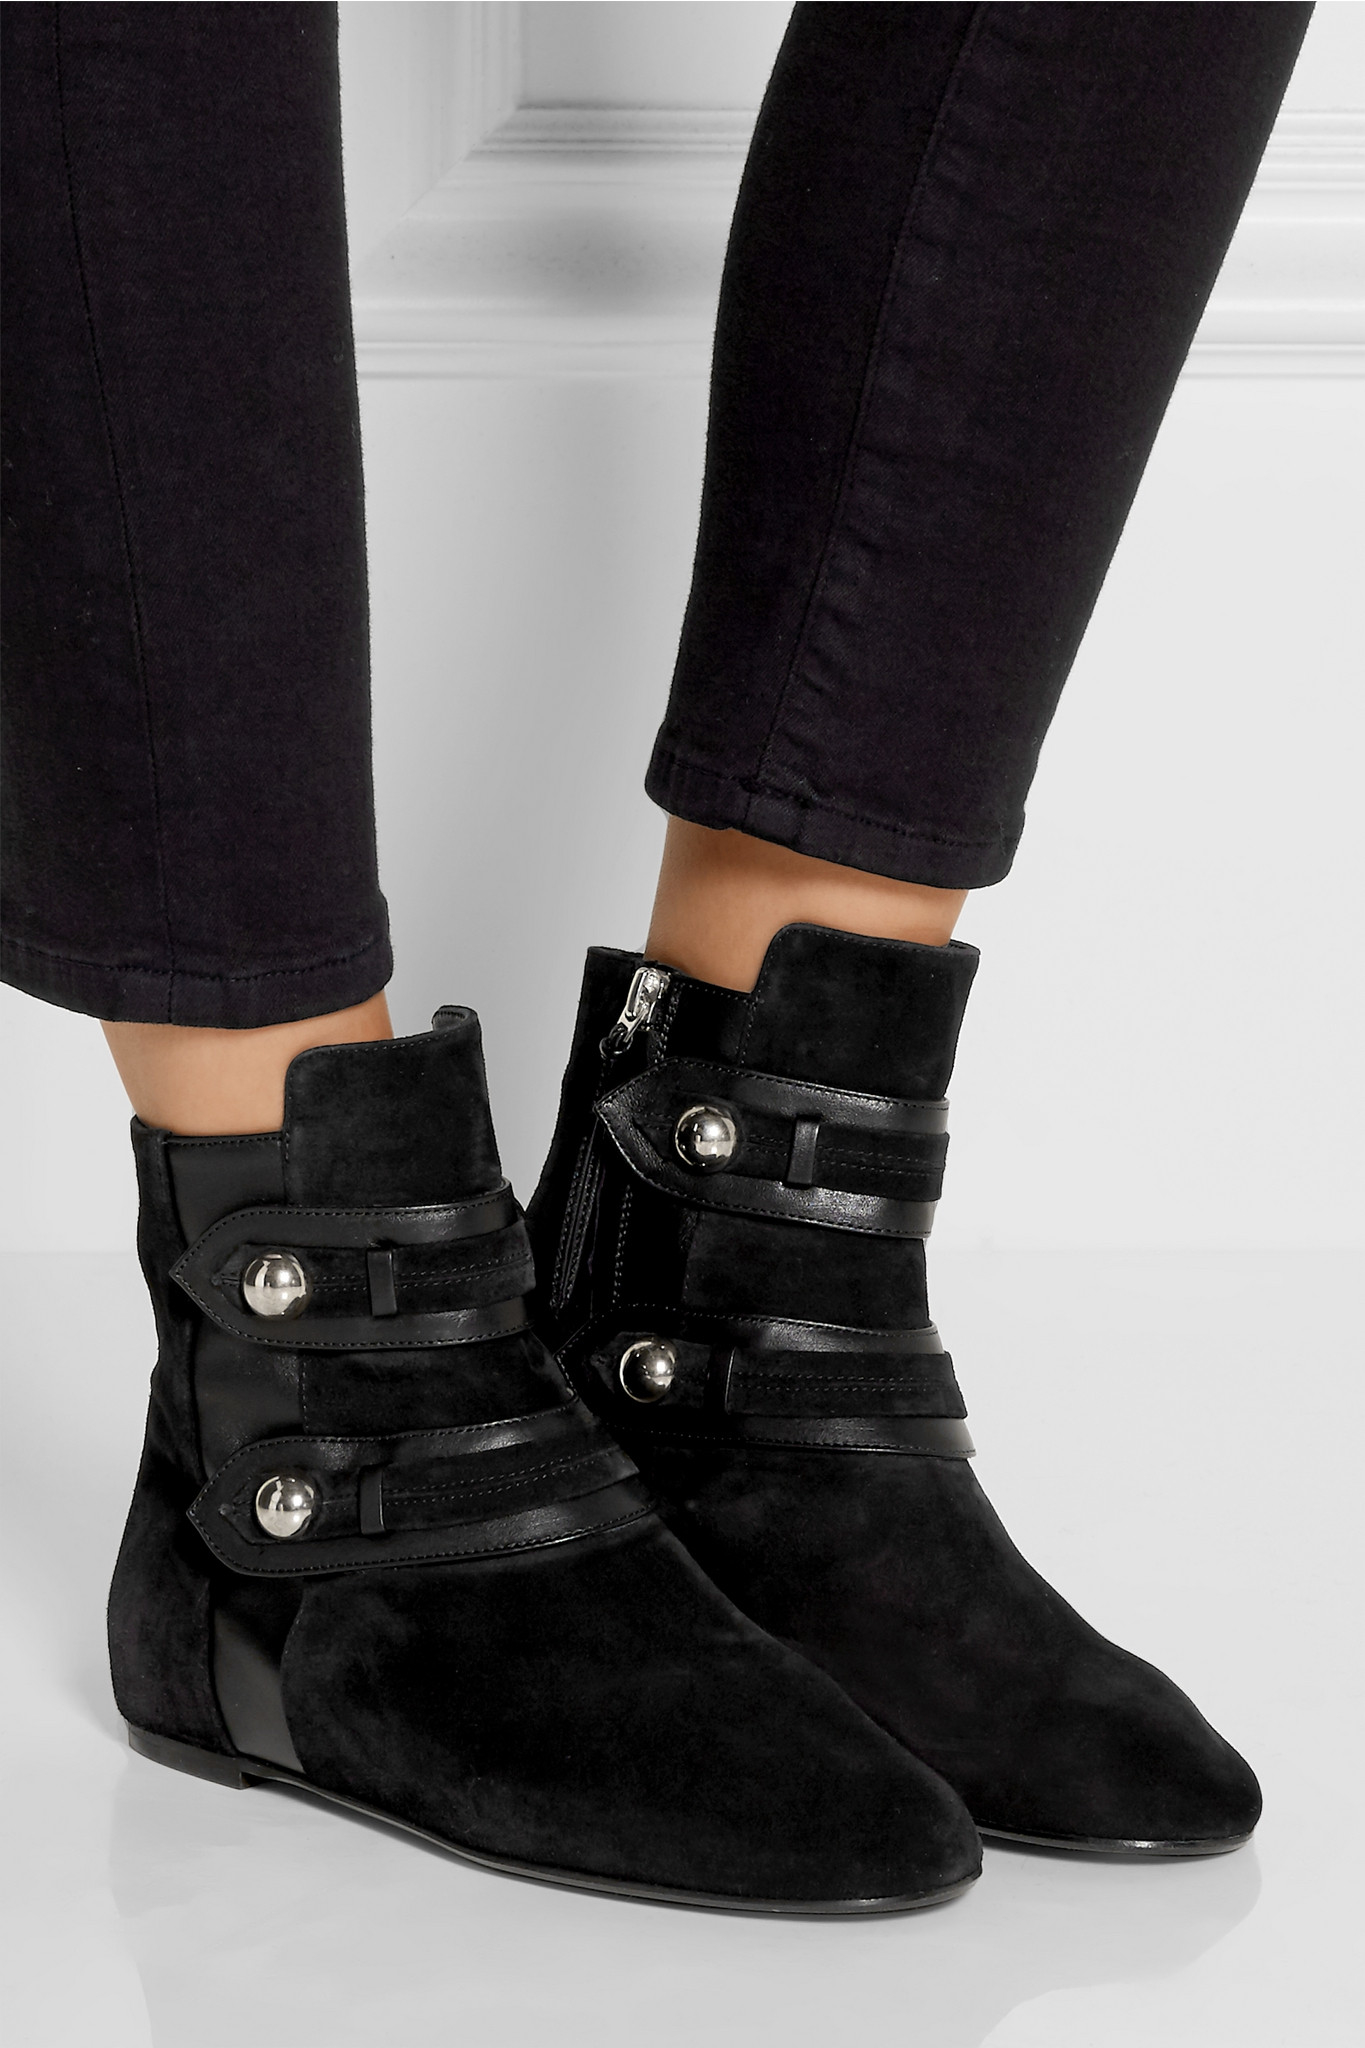 exclusive online Isabel Marant Roddy Suede Ankle Boots sale very cheap lVhM2lI